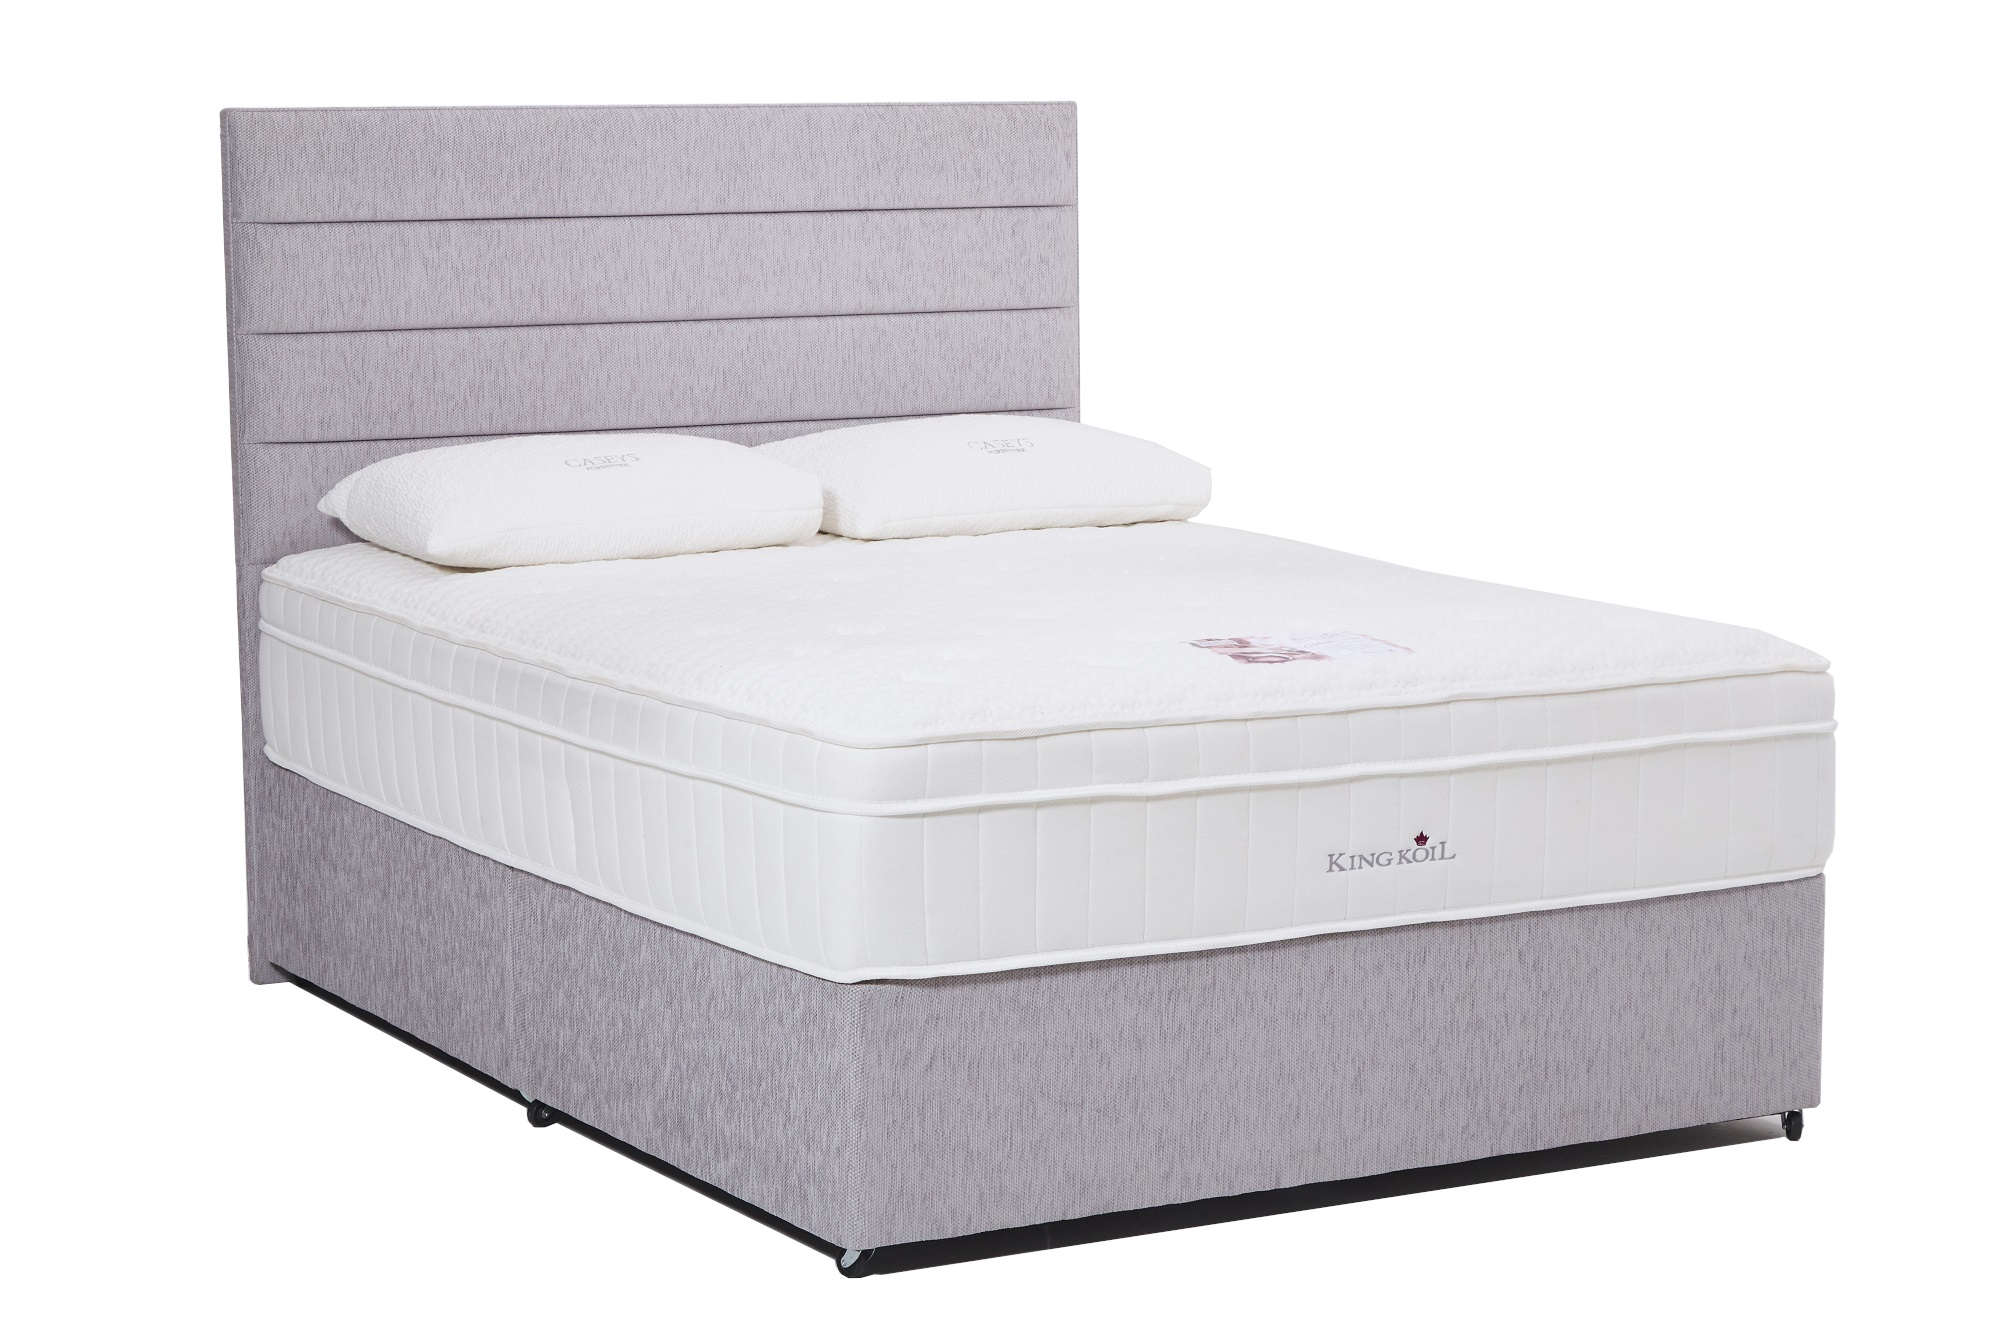 King Koil Celebration 2200 Mattress and Divan